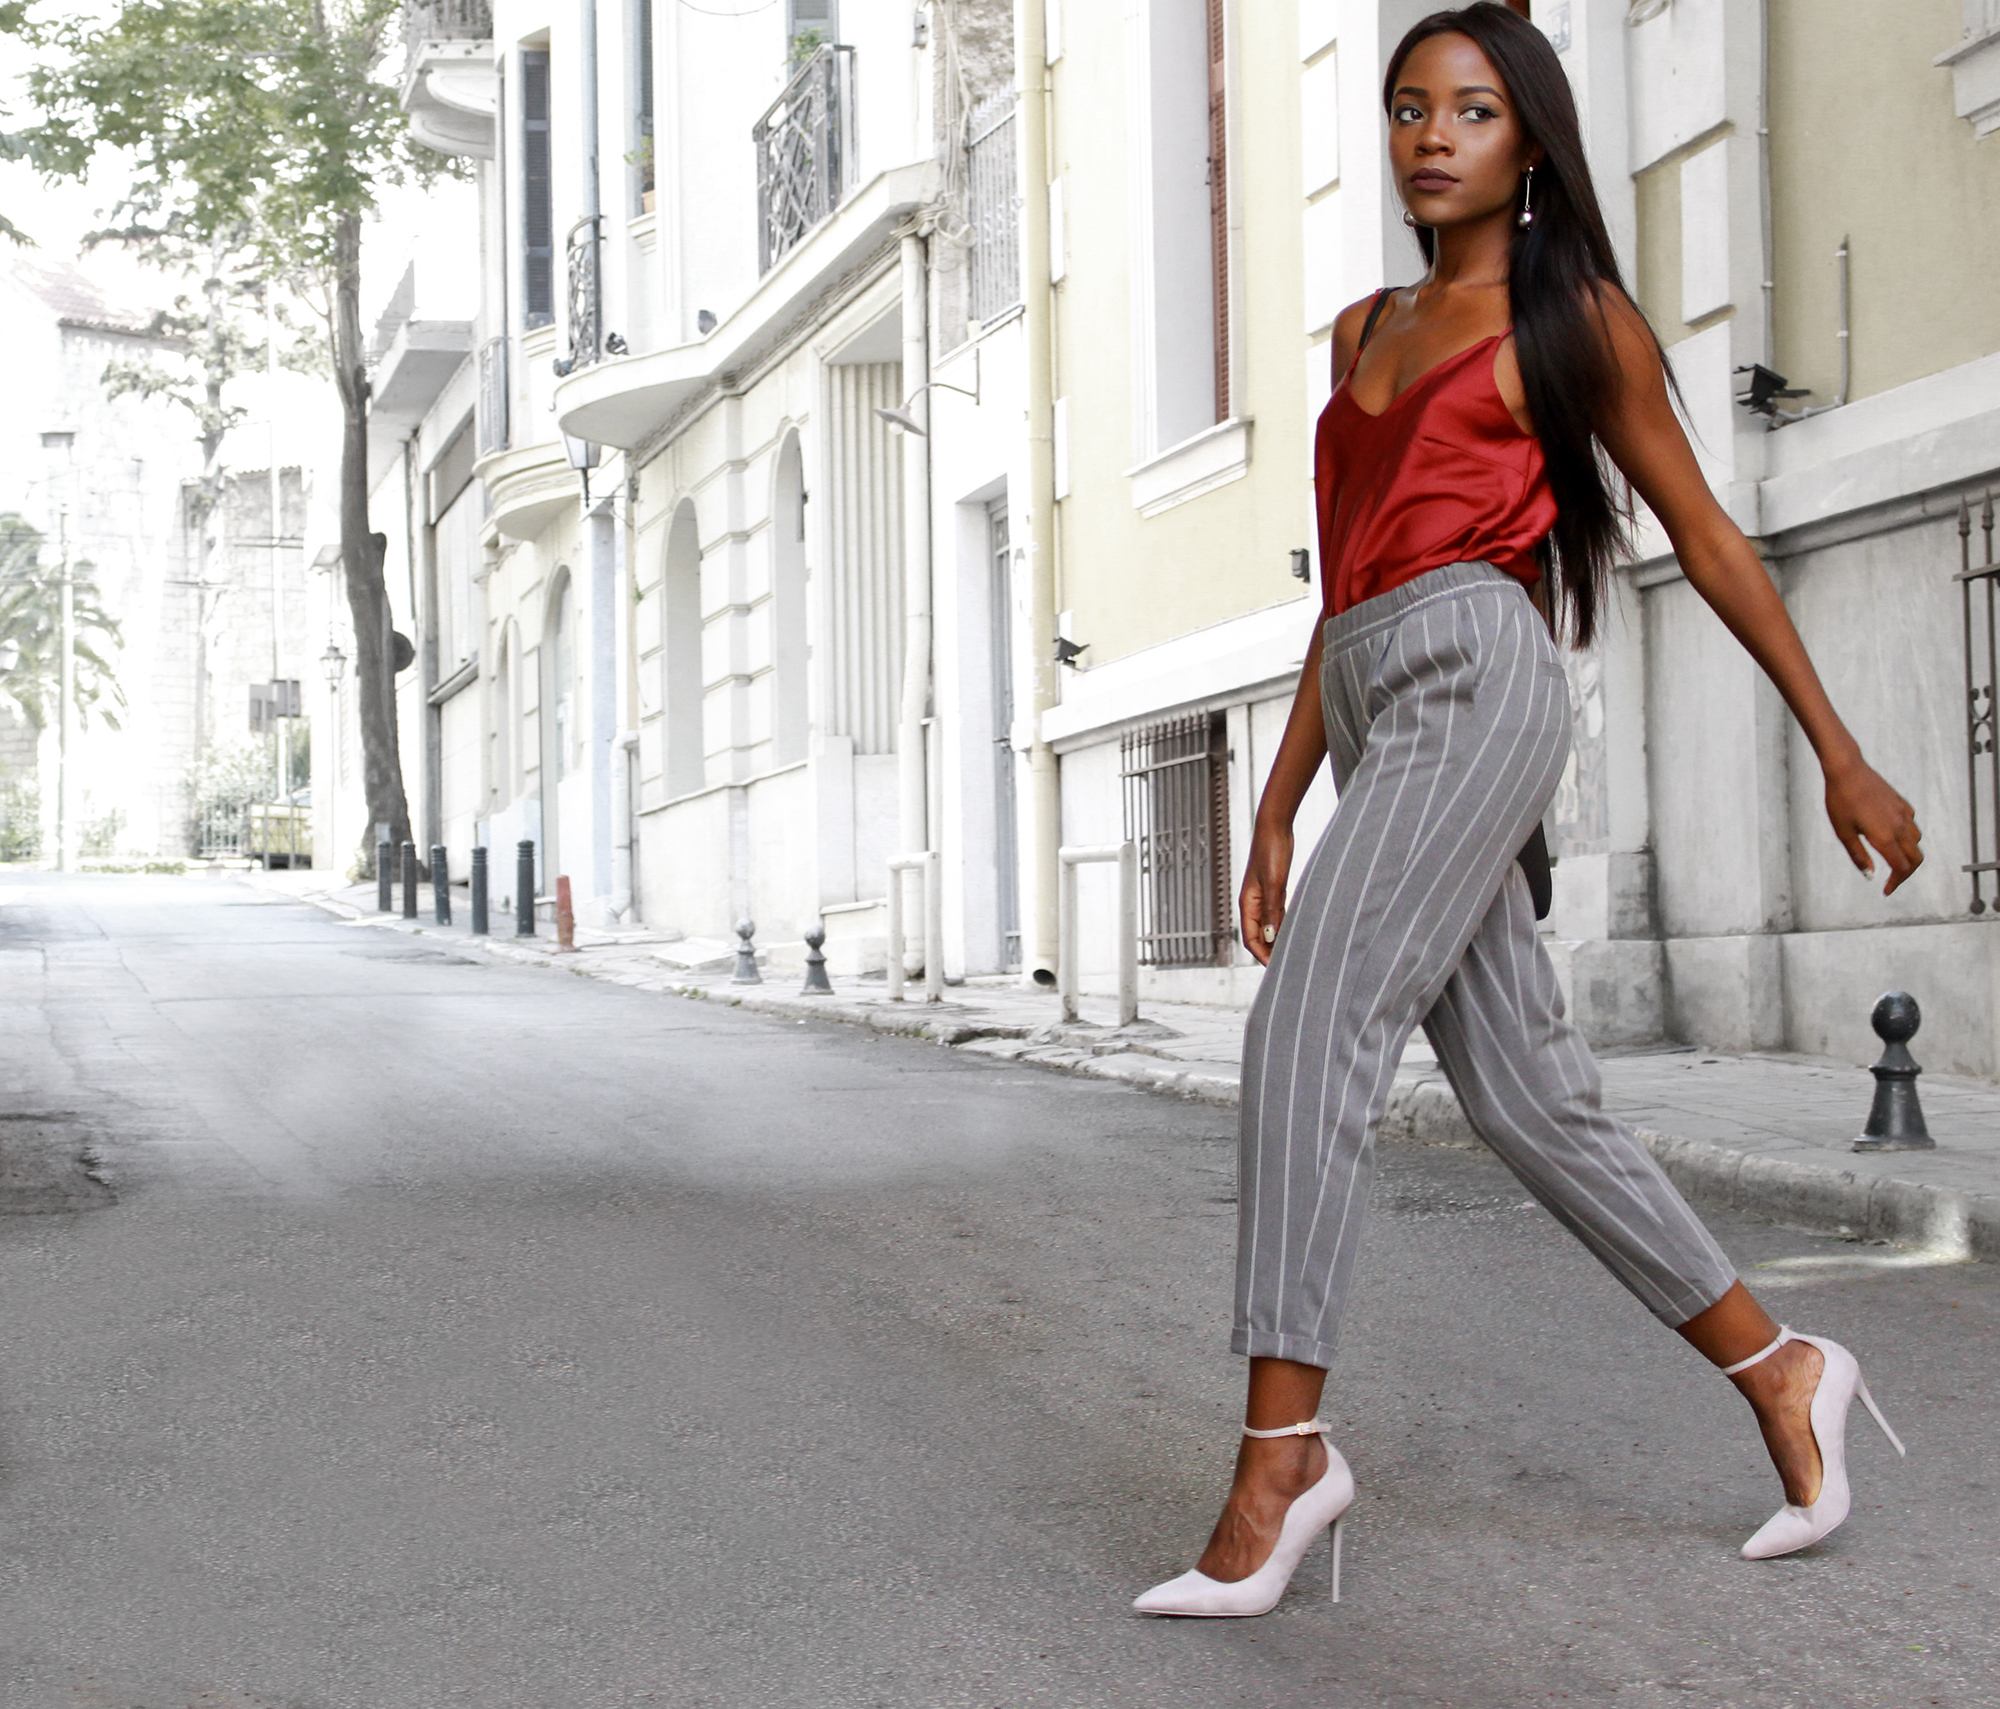 5-ways-to-feel-more-confident-with-your-style